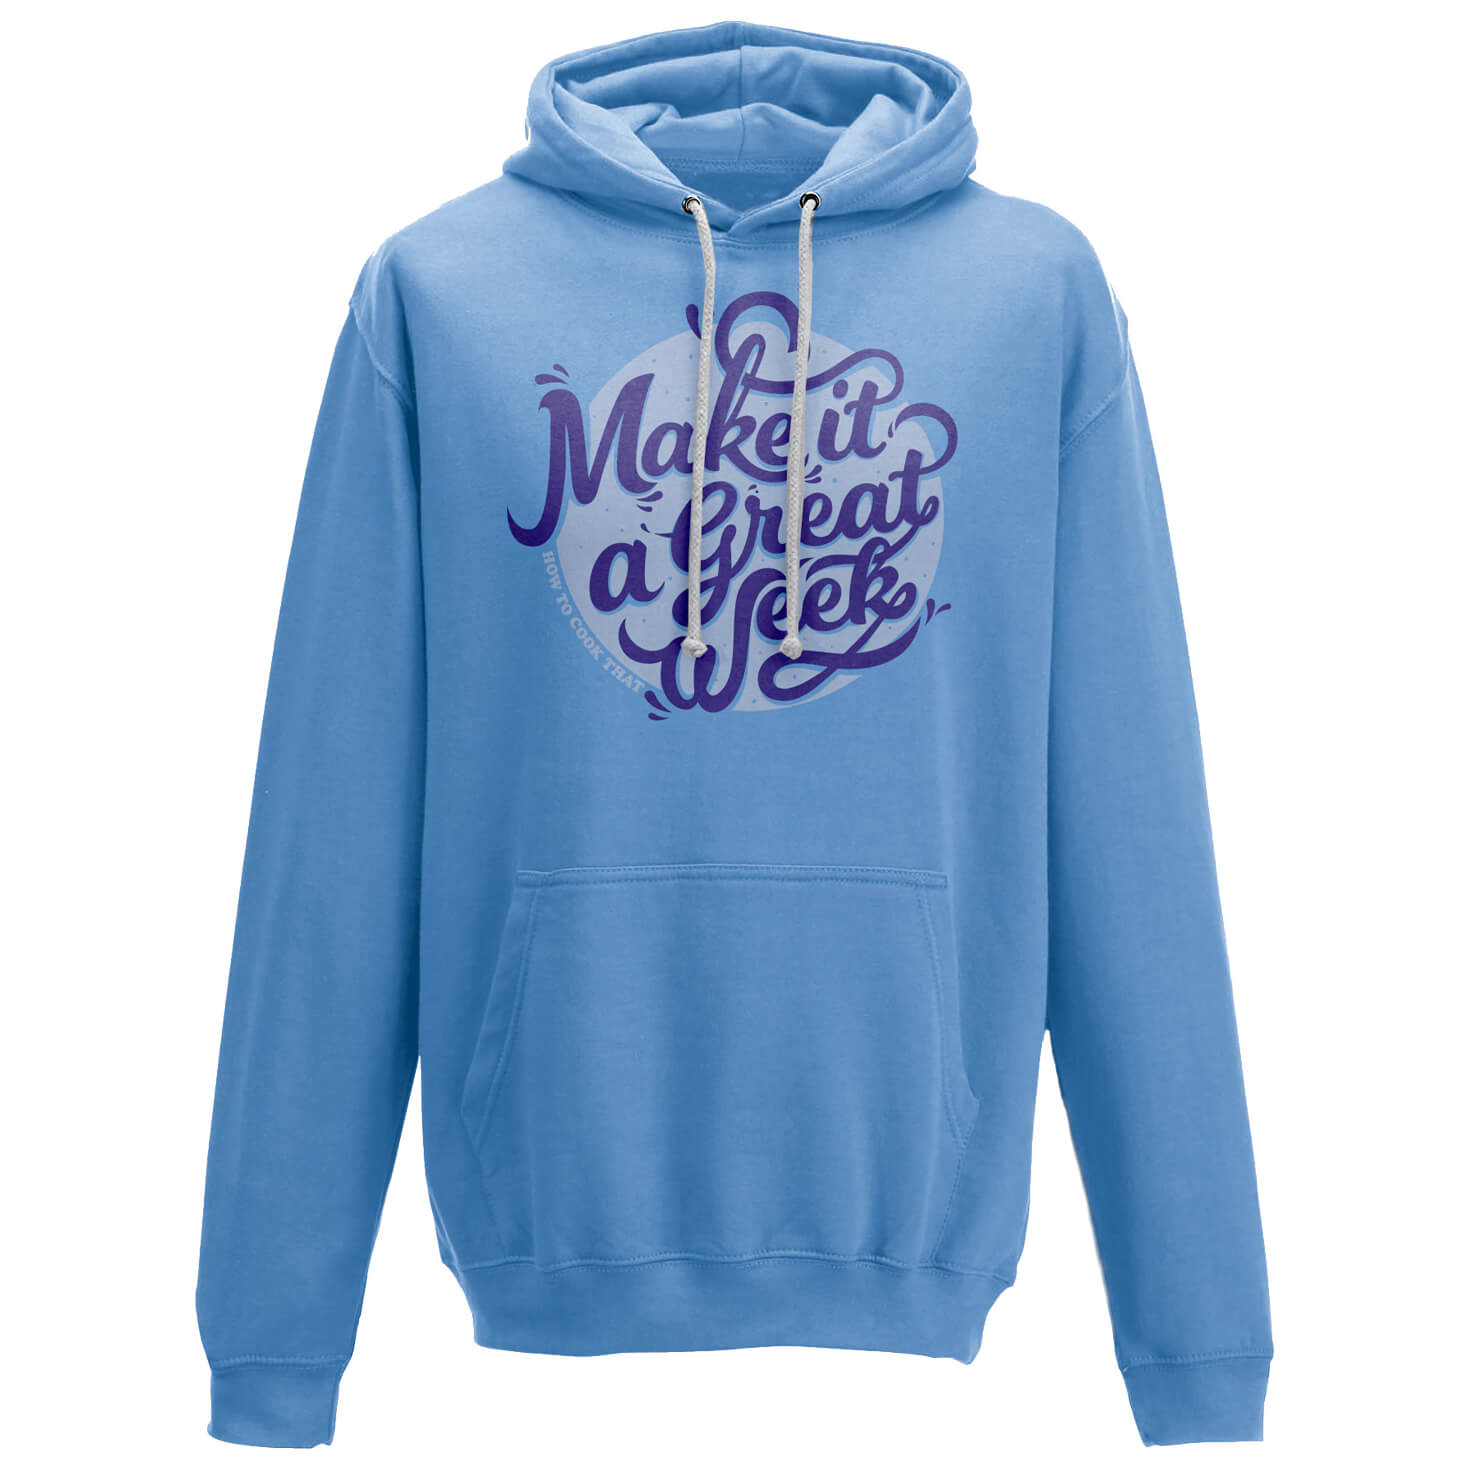 How To Cook That Make It A Great Week Blue Hoodie